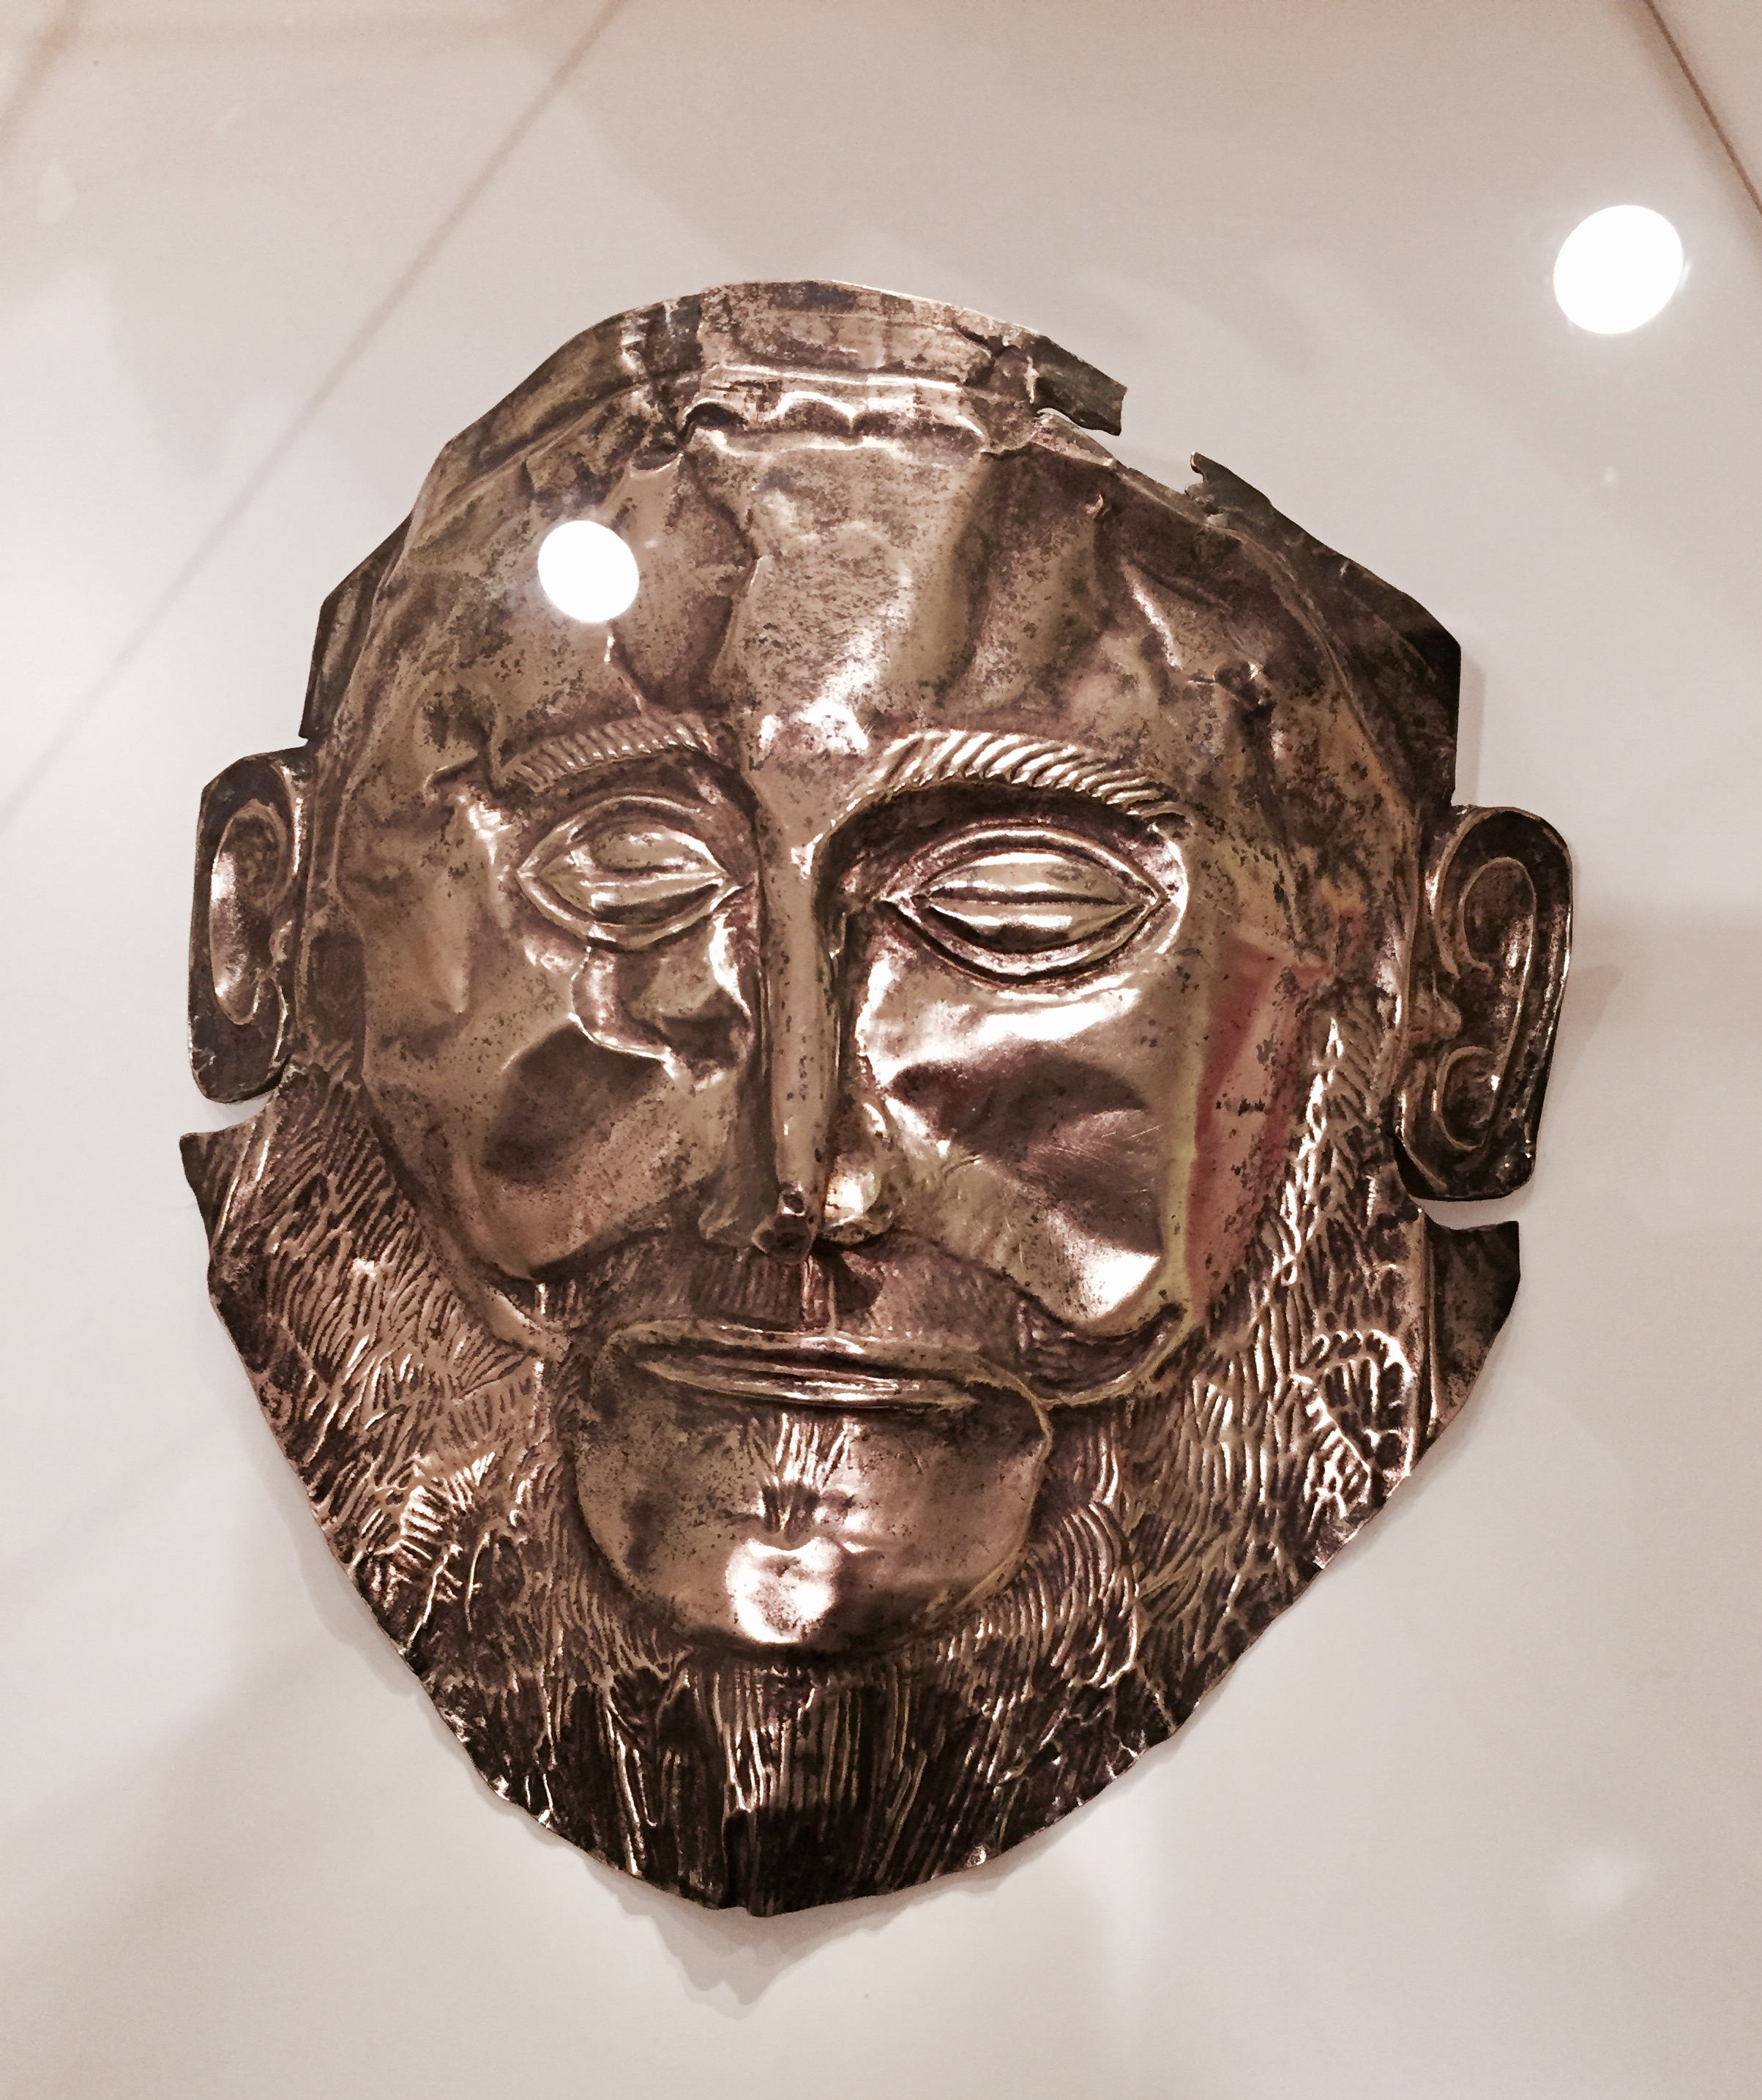 Copy of the mask of Agamemenon